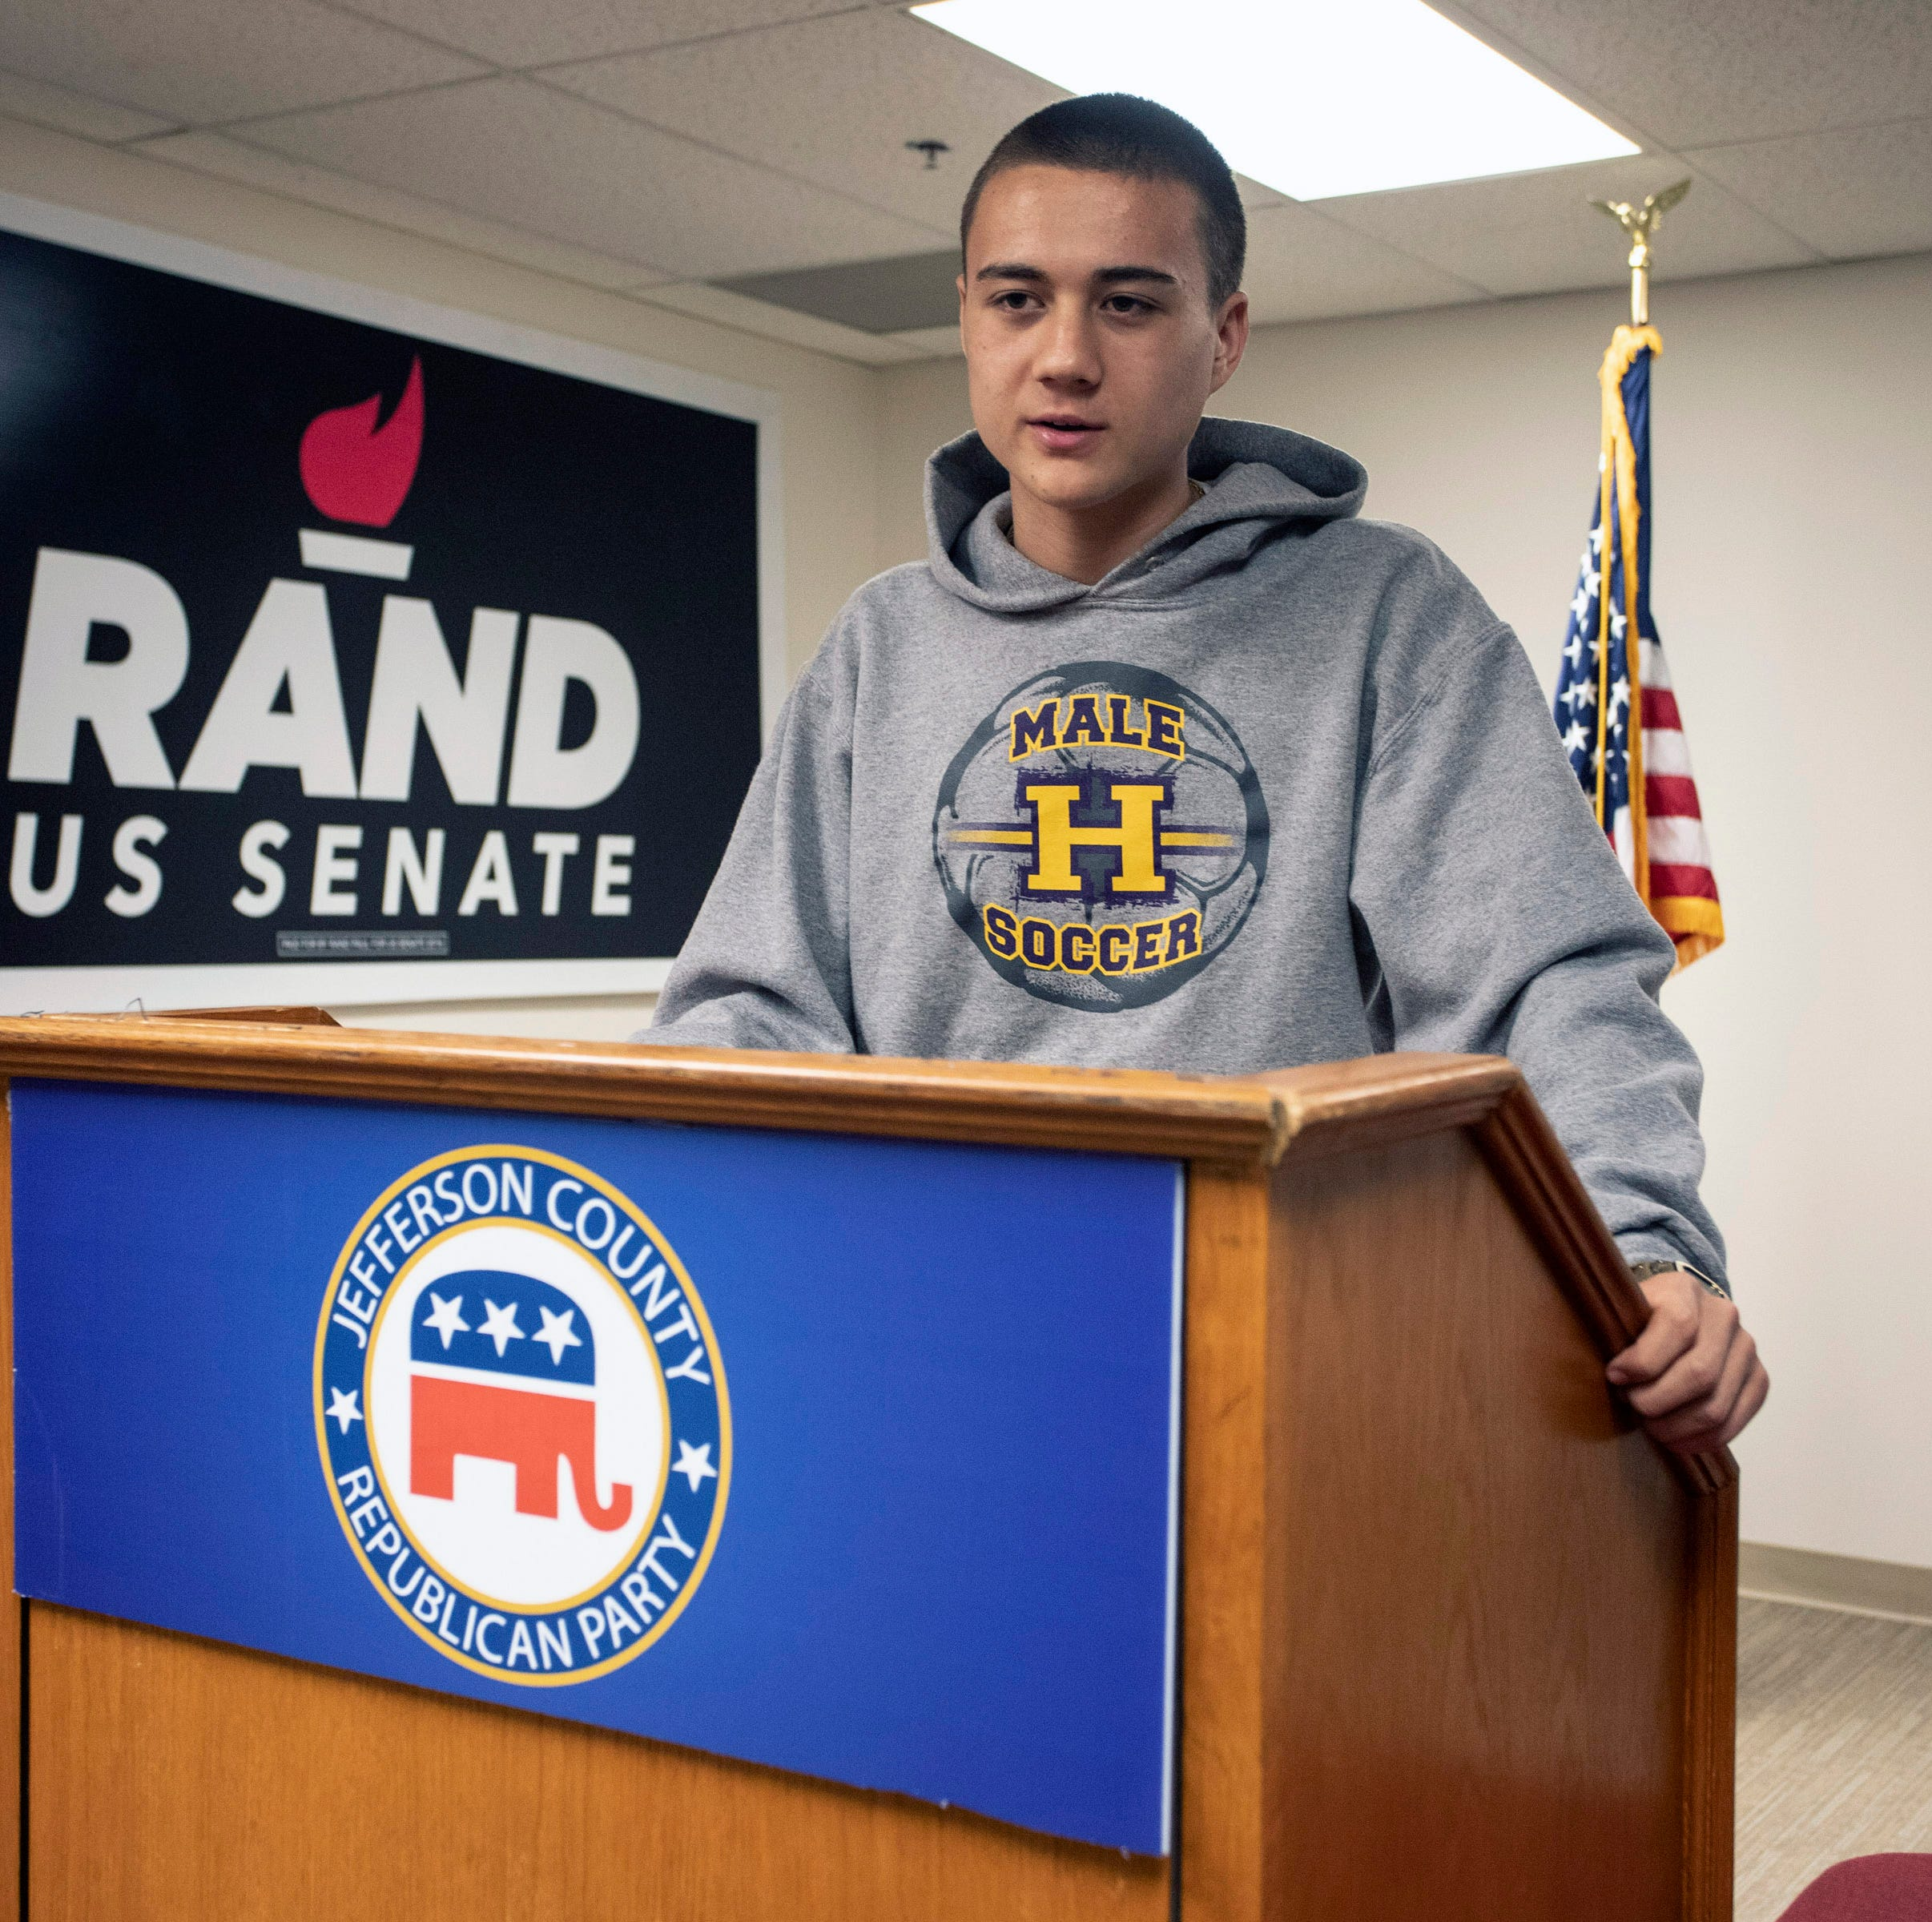 JCPS student starts Republican club with help from unexpected source: a Democrat